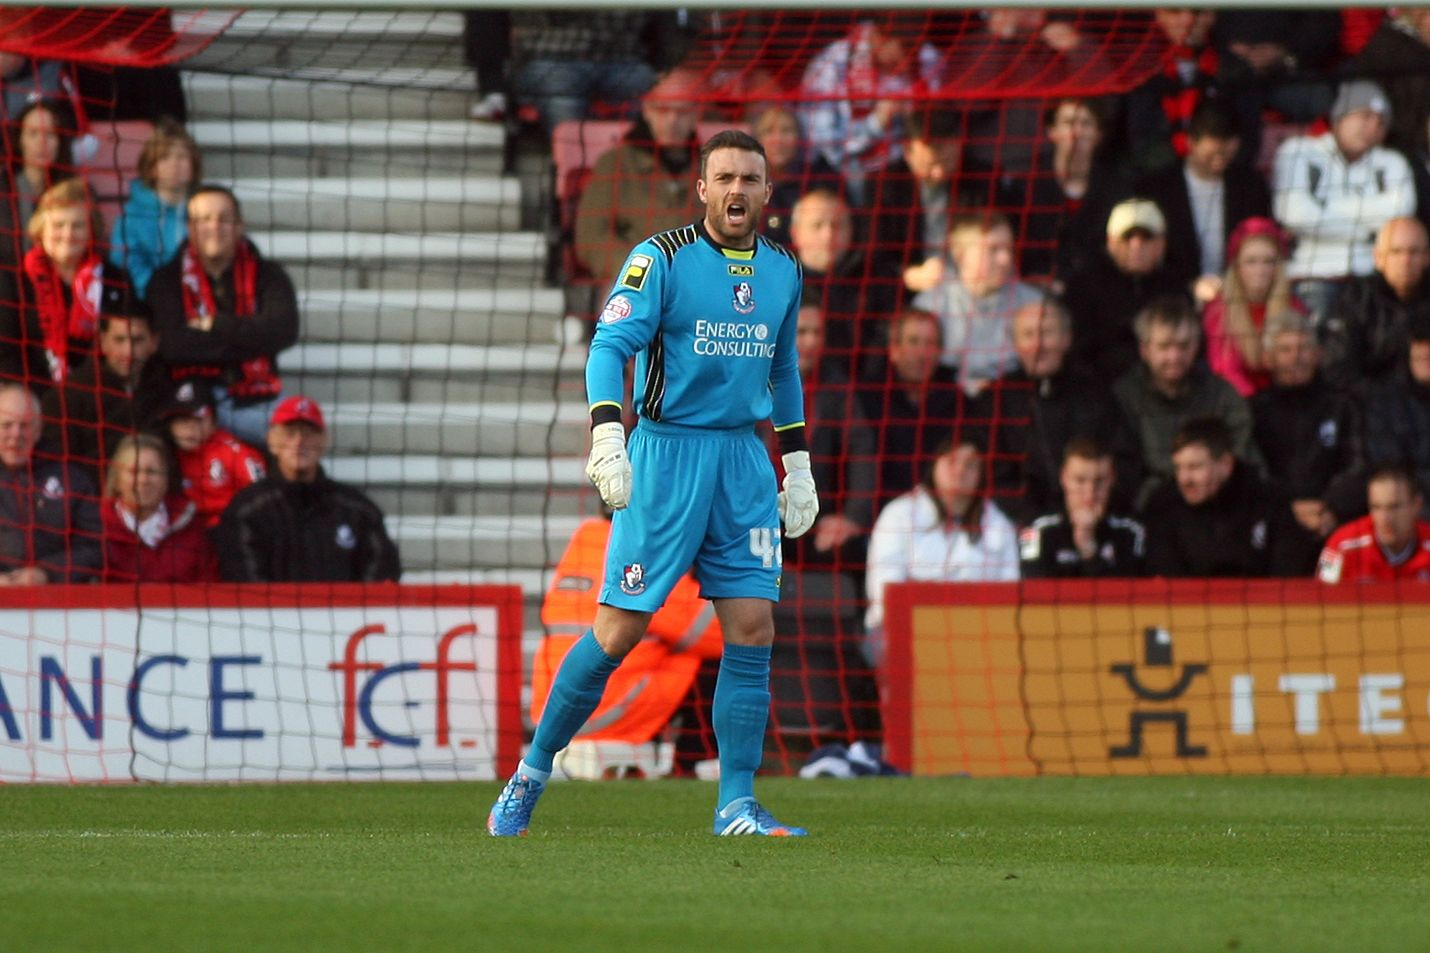 STAR TURN: Cherries goalkeeper Lee Camp